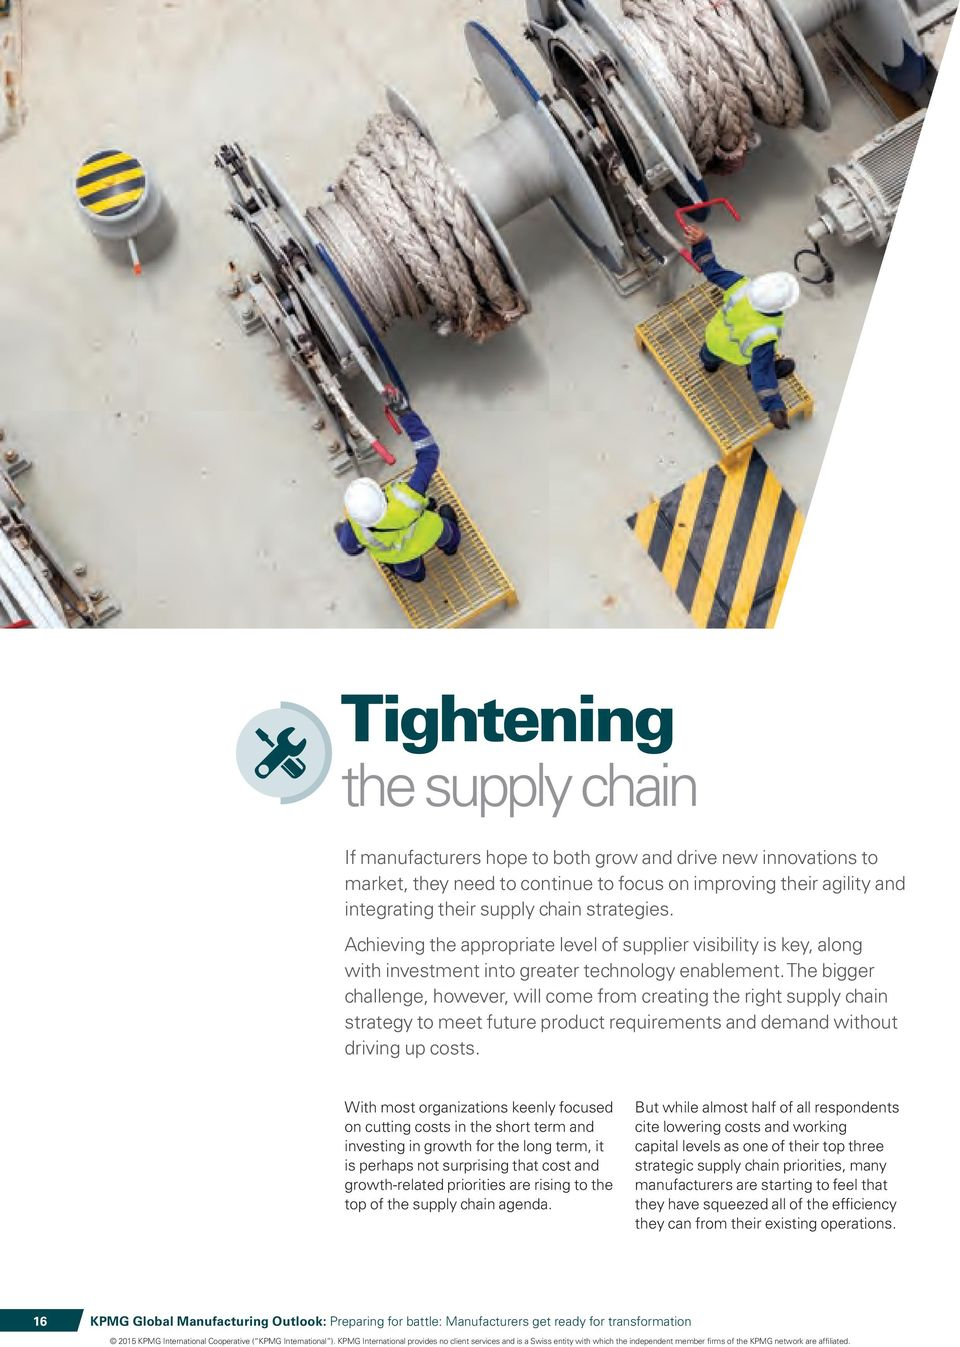 The bigger challenge, however, will come from creating the right supply chain strategy to meet future product requirements and demand without driving up costs.